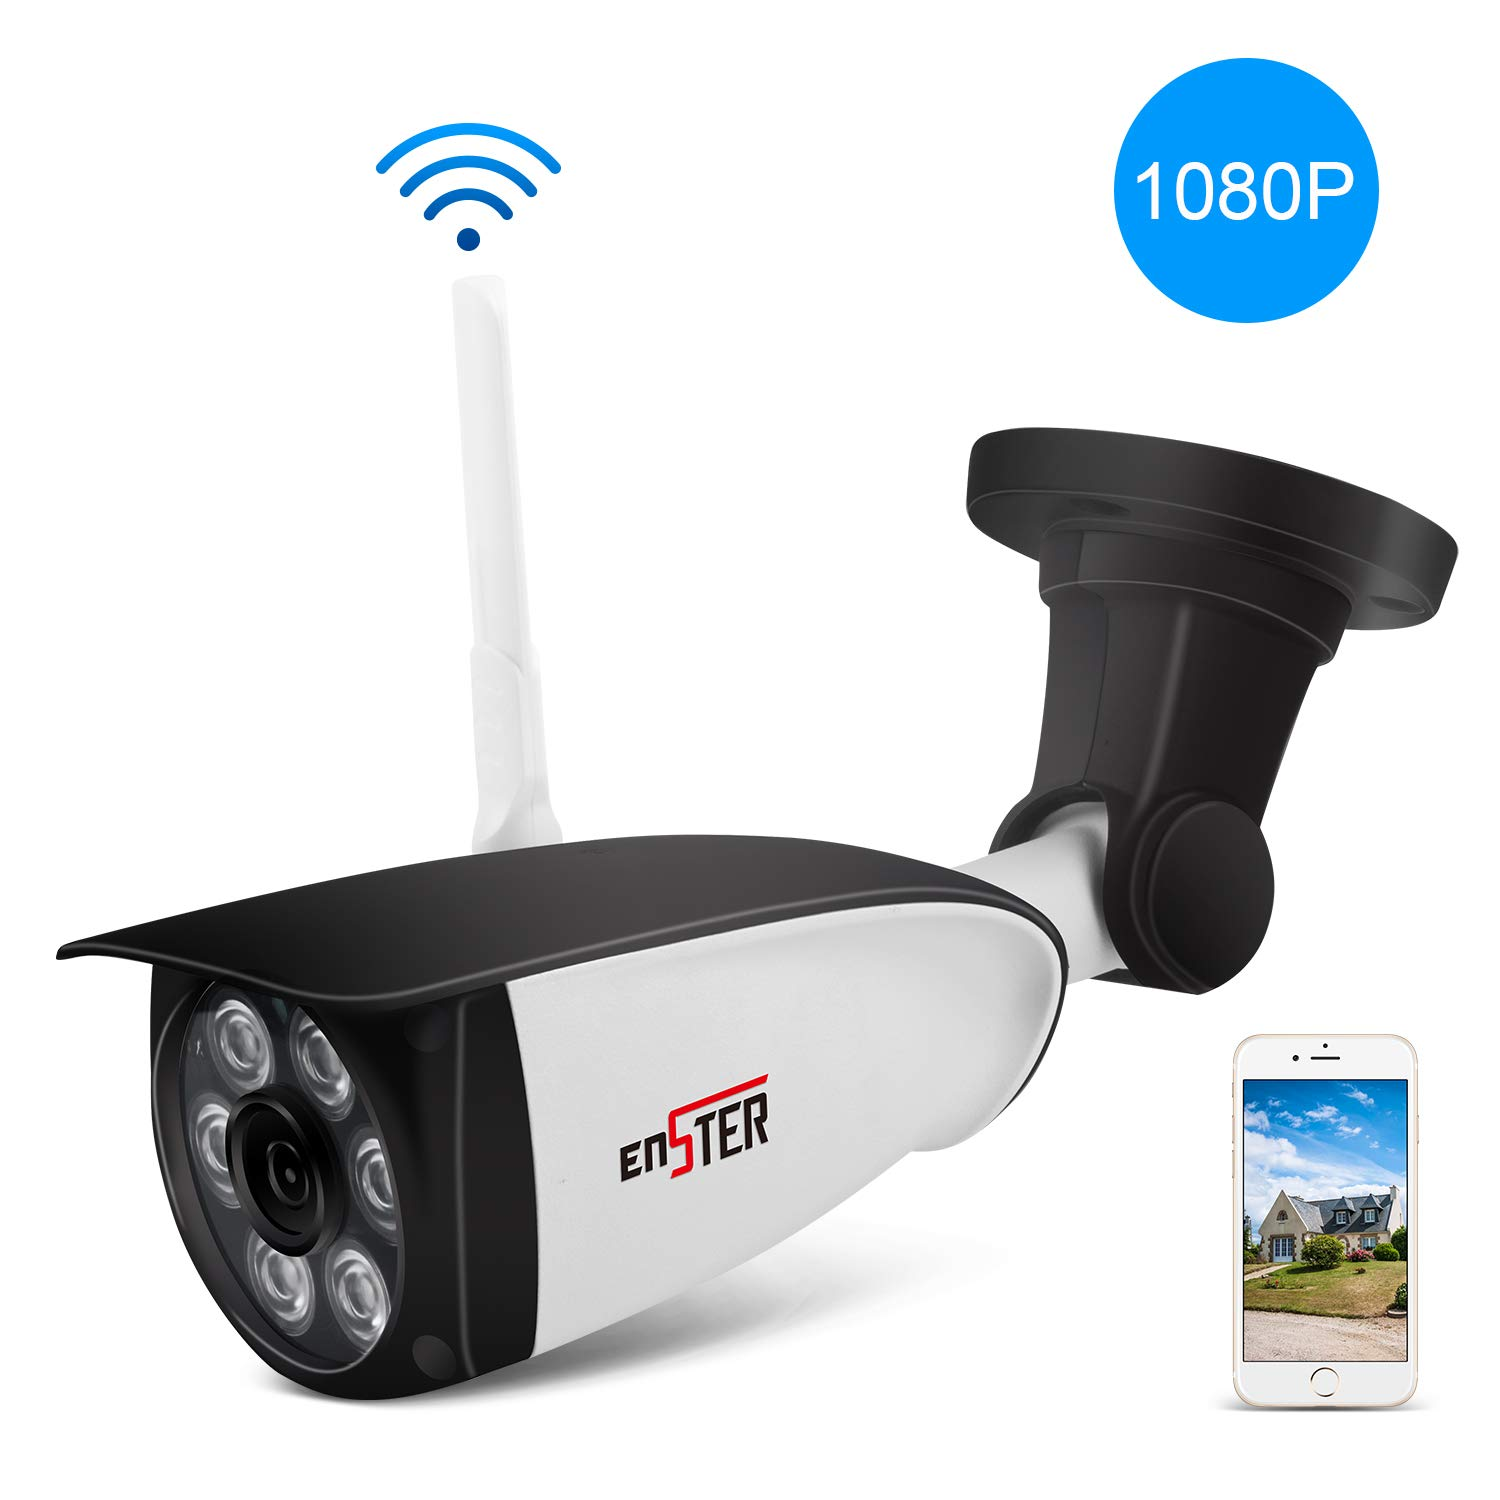 ENSTER Wireless Outdoor Security Camera - 1080P Home Outside Surveillance Camera - Motion Detection, Waterproof, Night Vision, FTP, Support Max 128GB Micro SD Card -Windows, iOS, Android Compatibility